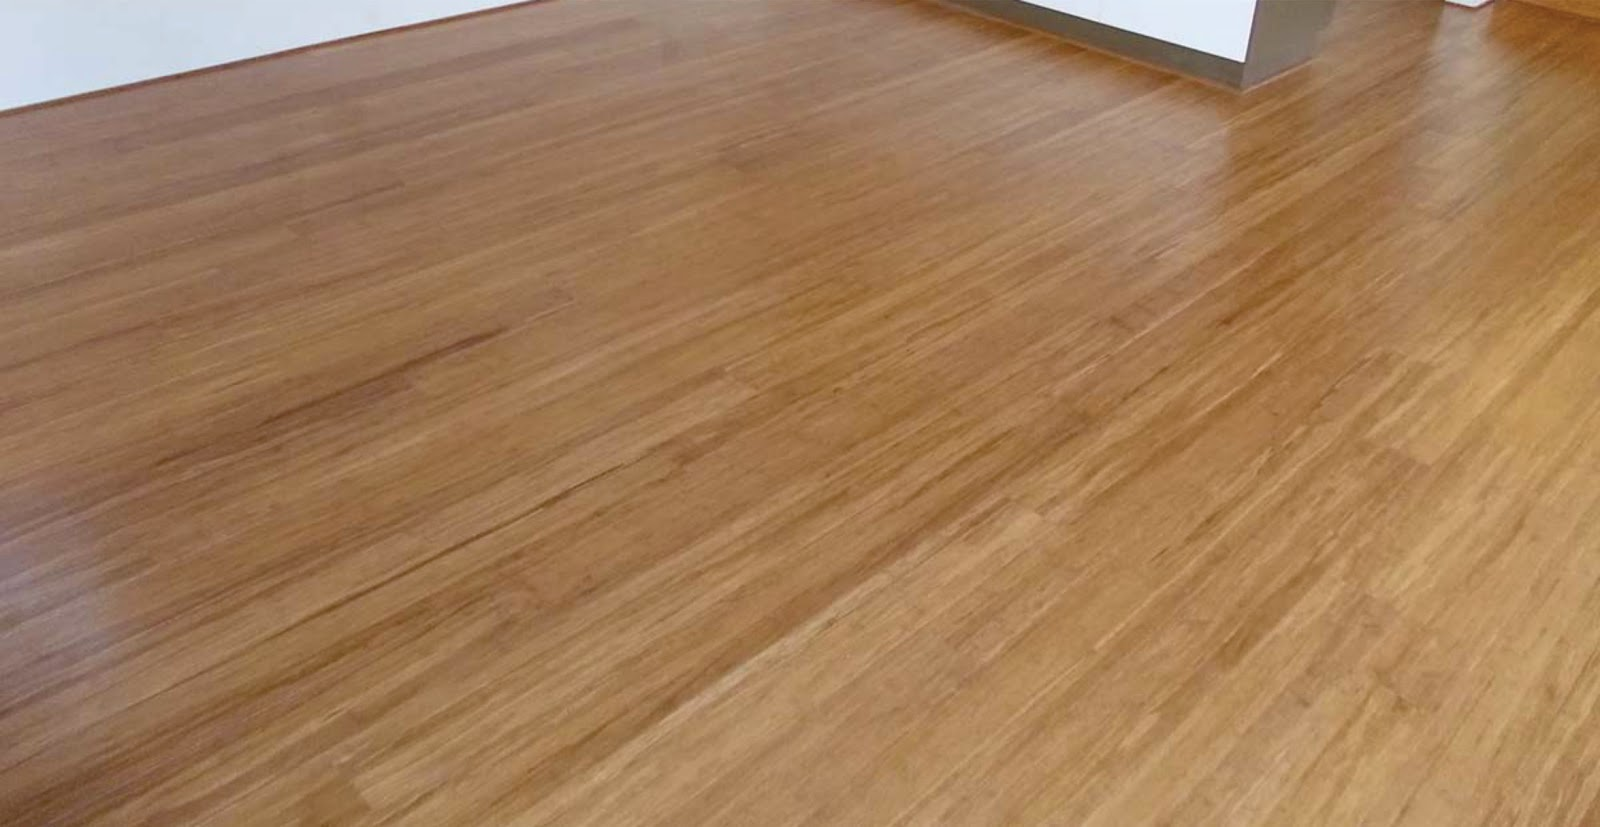 Bamboo grove photo bamboo hardwood flooring for Best wood for wood floors